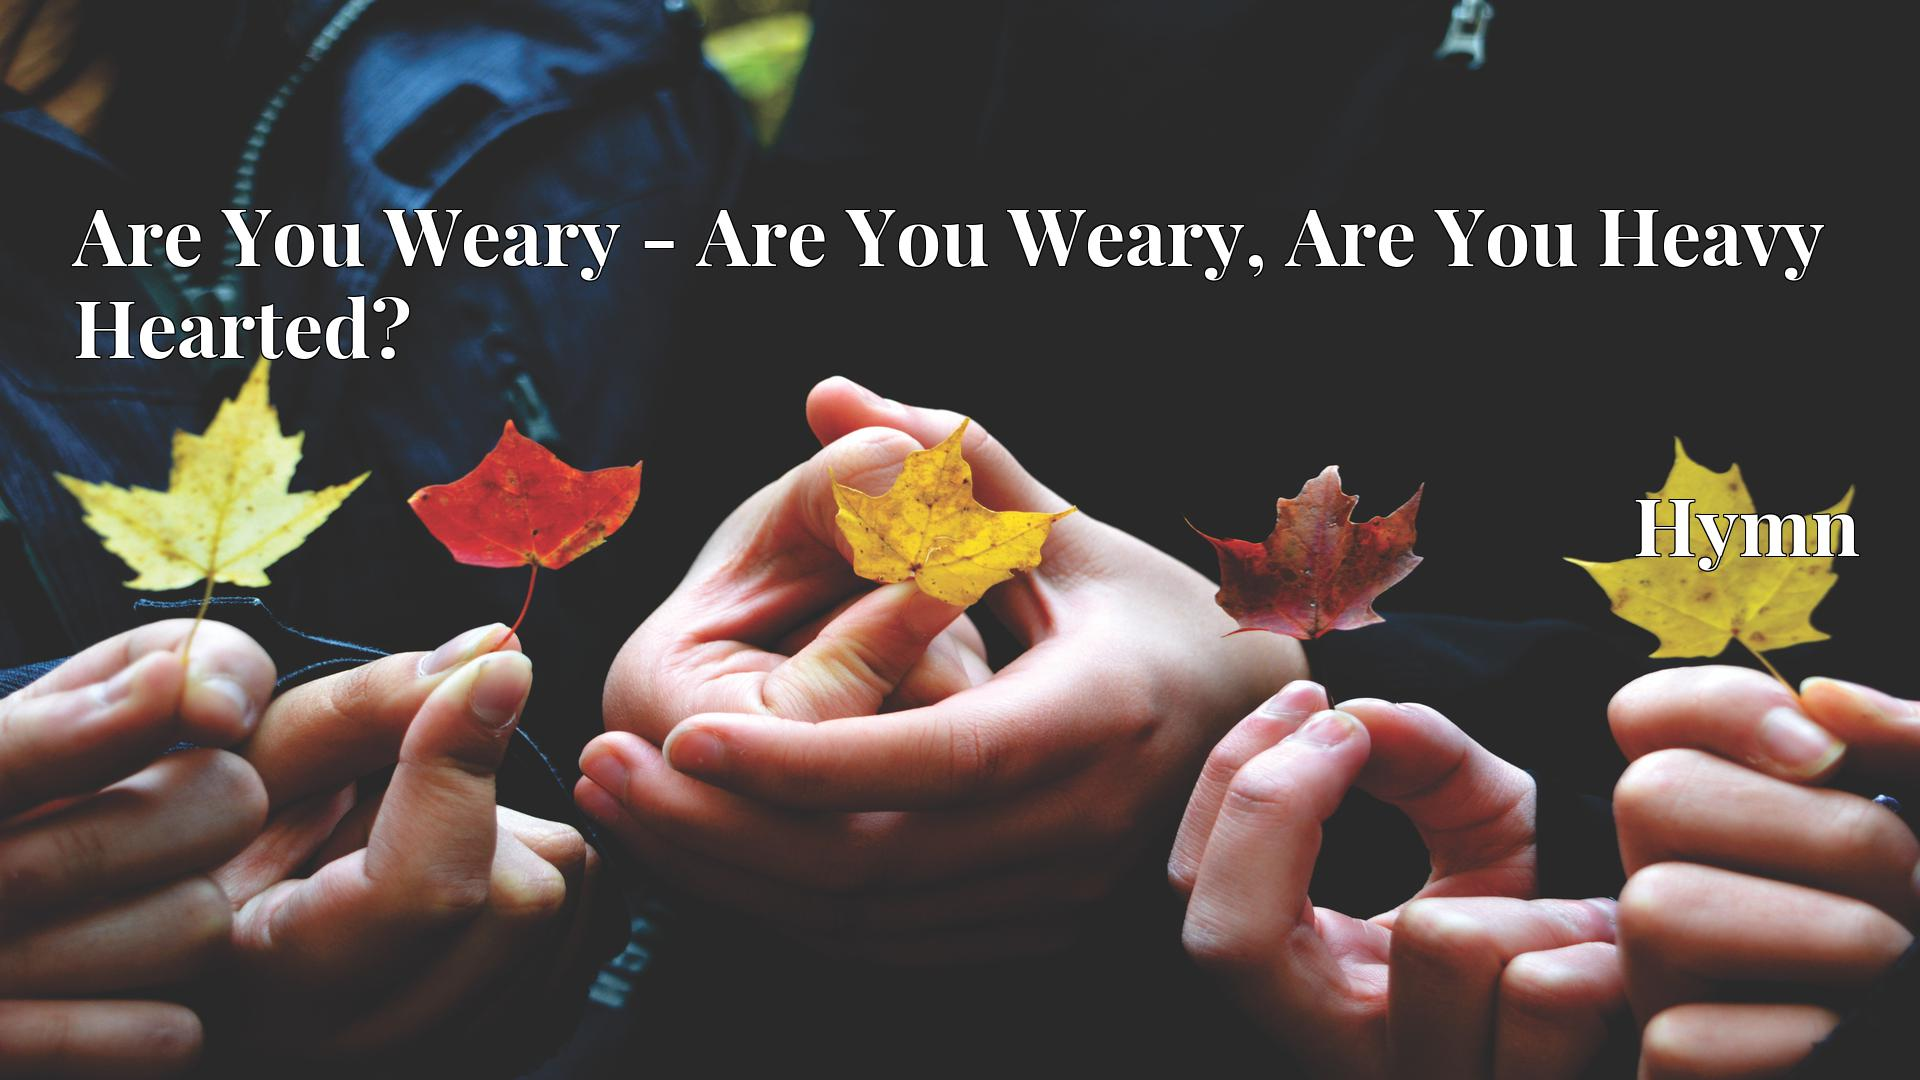 Are You Weary - Are You Weary, Are You Heavy Hearted? - Hymn